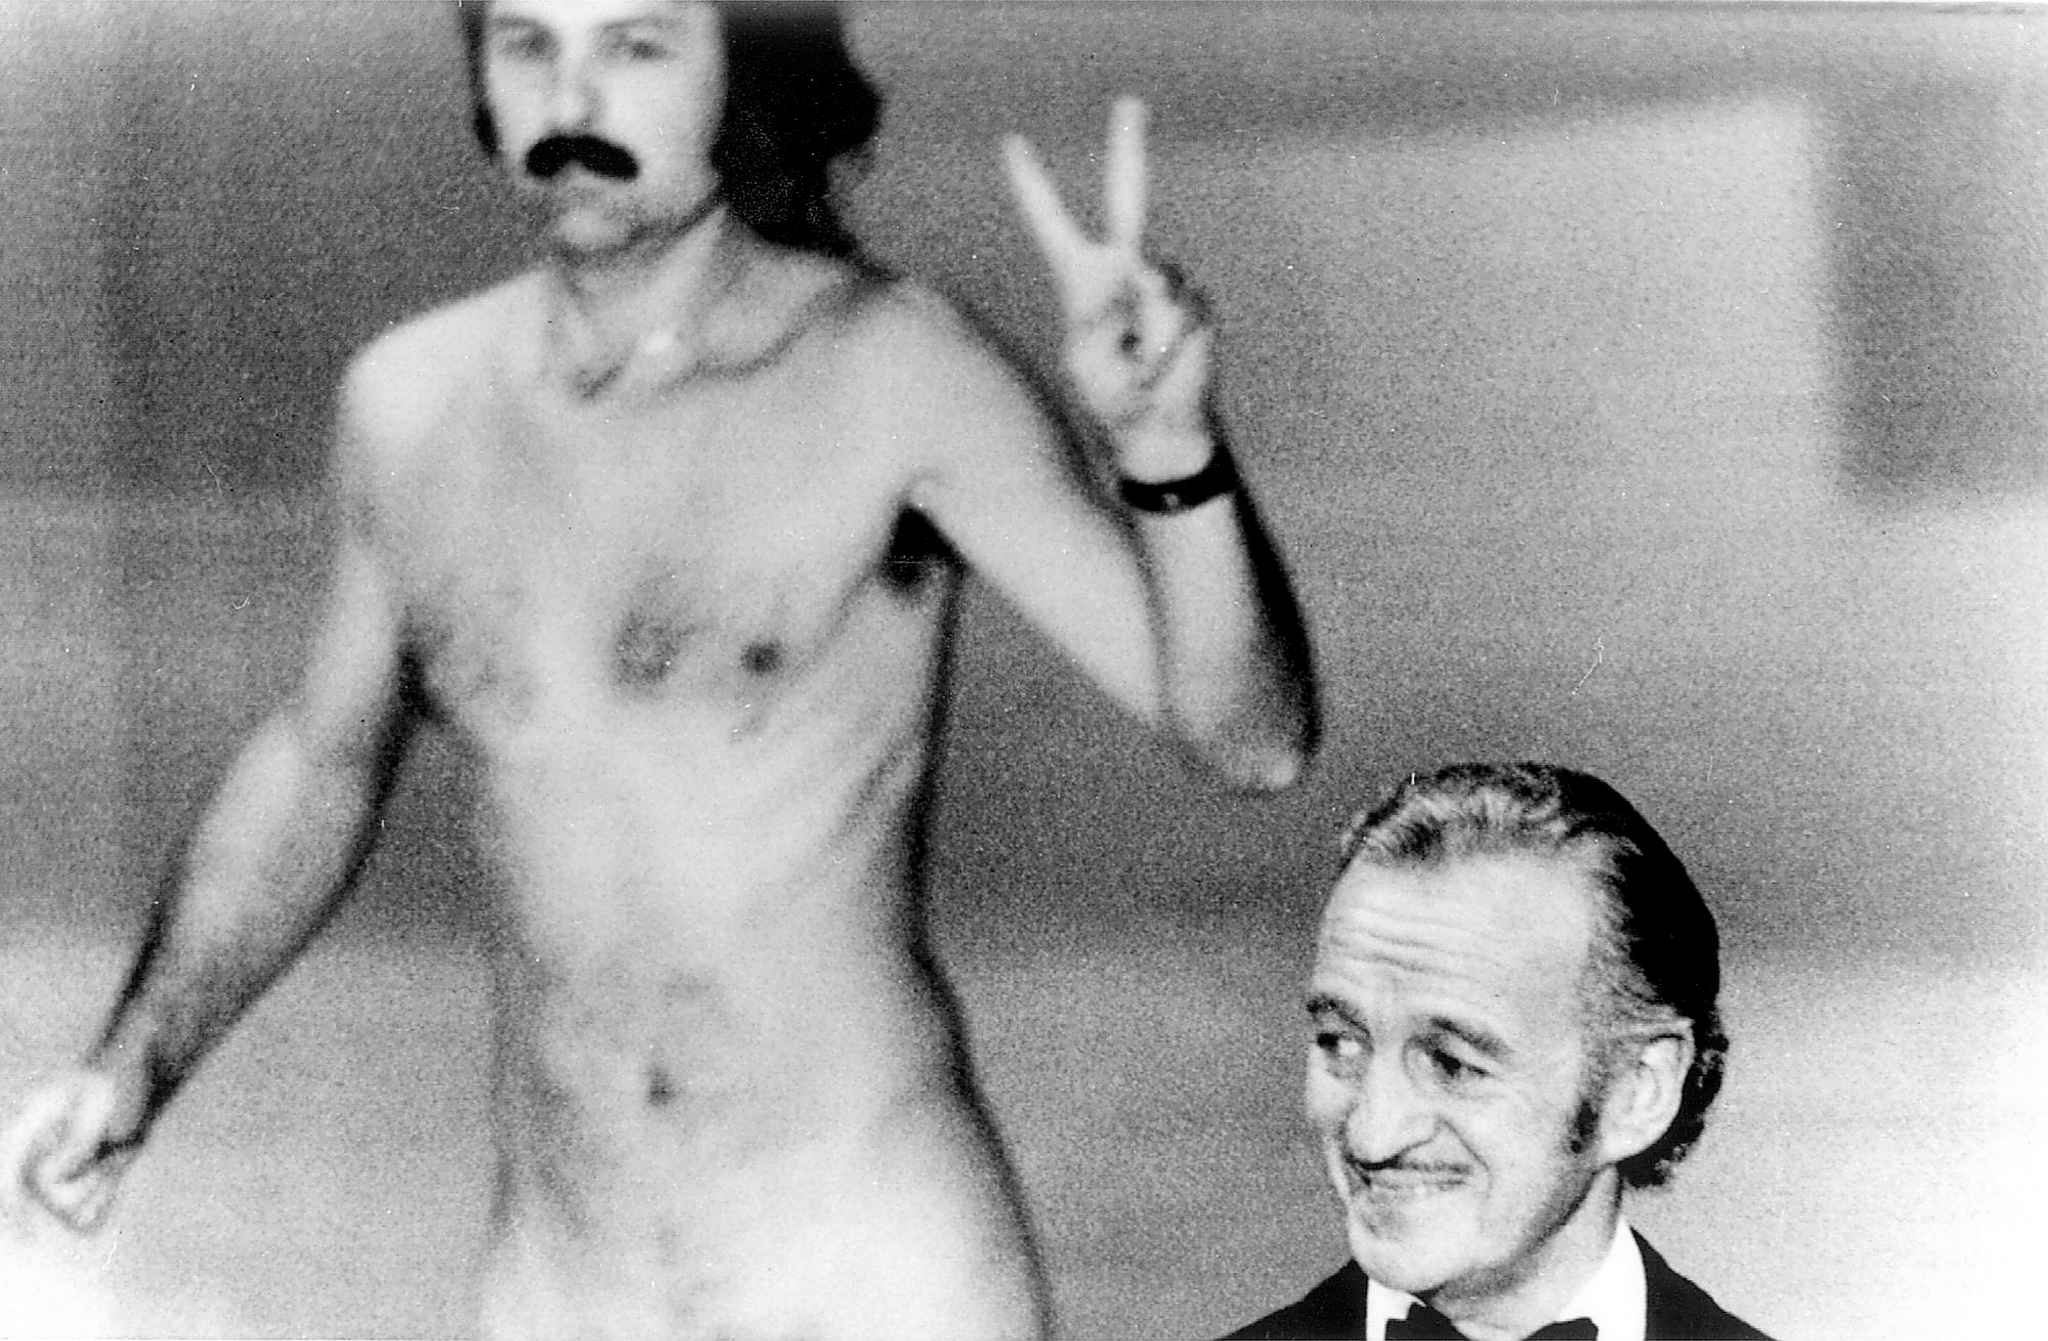 A streaker appears on stage surprising David Niven, right, who isn't quite sure what's happening behind him. (Associated Press files)